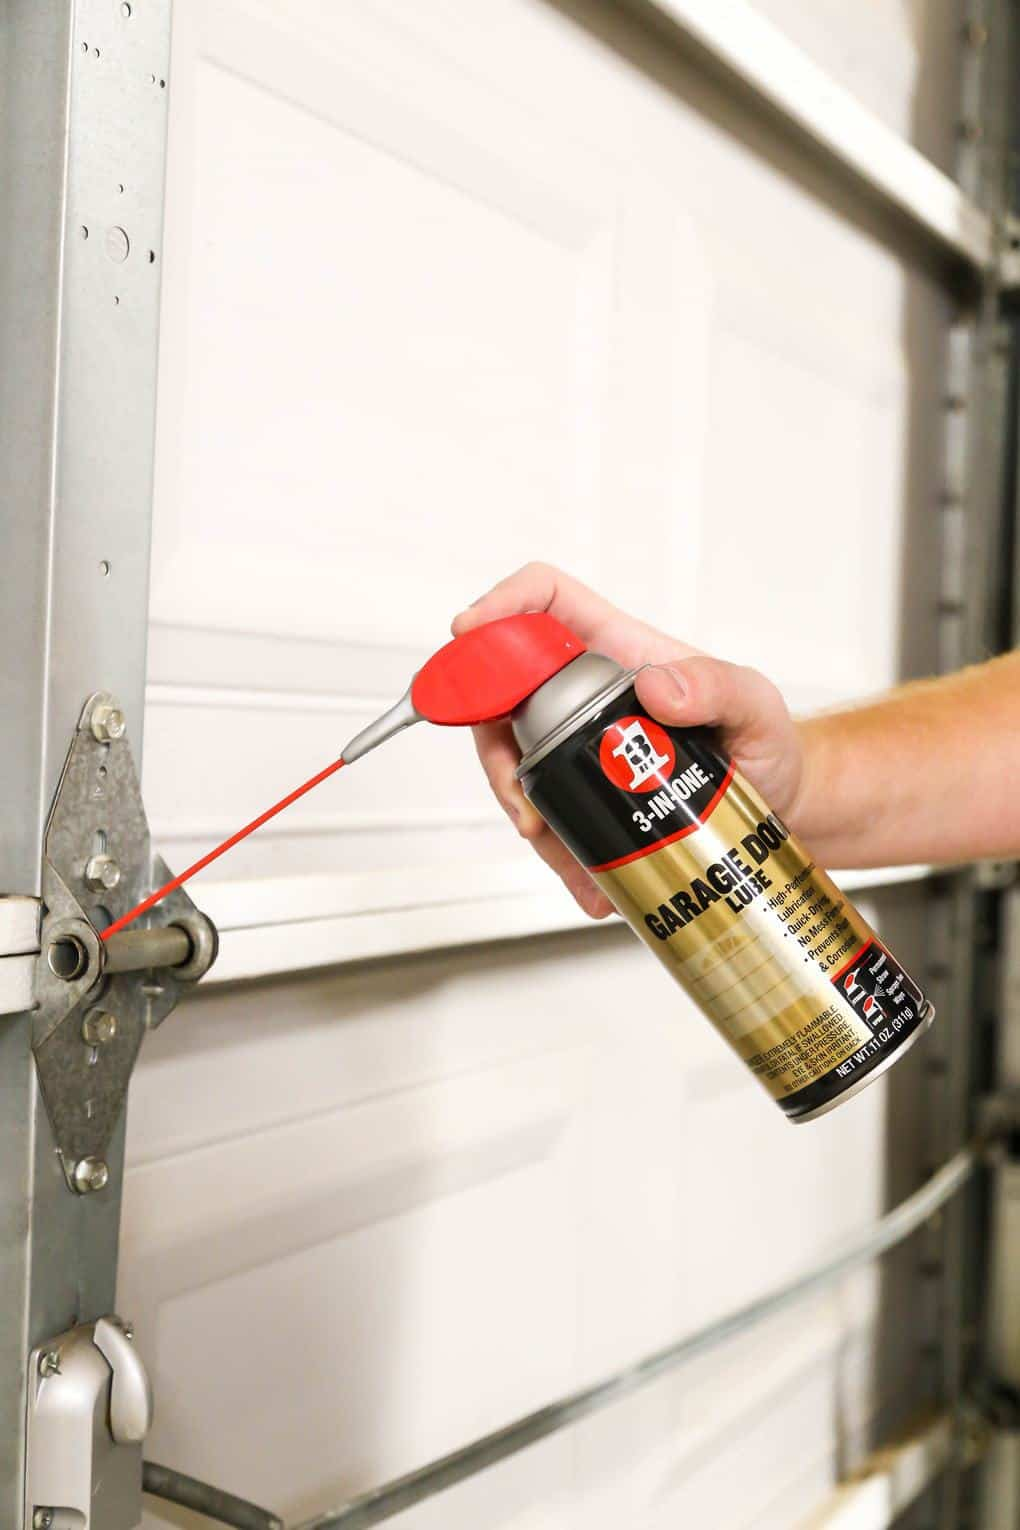 3-in-1 garage door lube for garage door maintenance